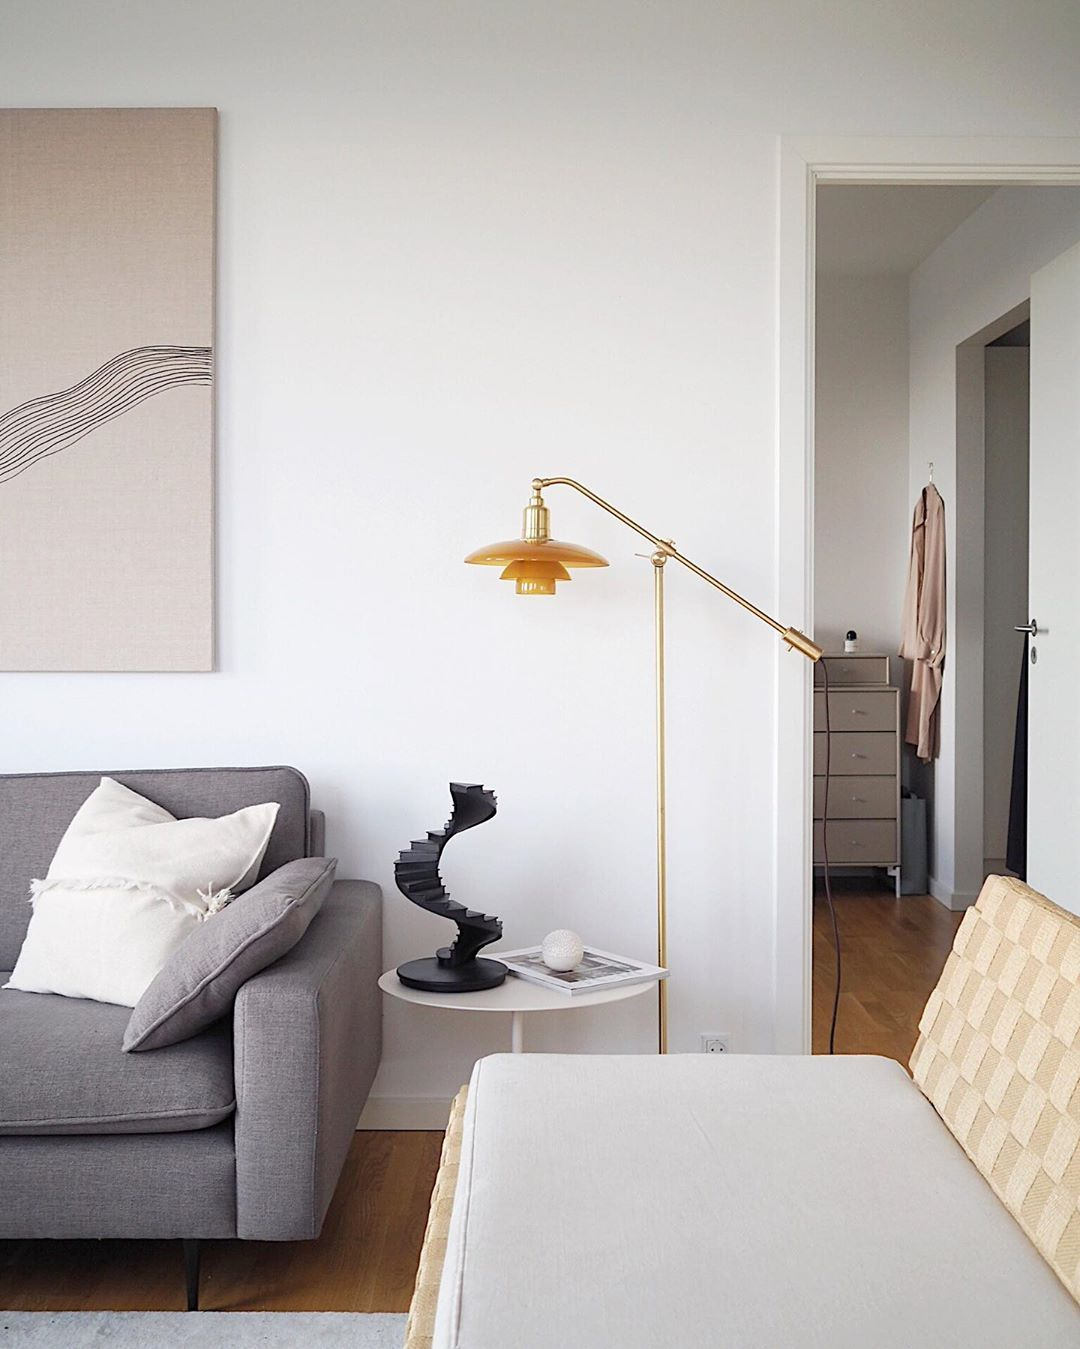 Nothing Beats Coming Home To Your Own Home After A Holiday I Immidiately Sat Down On The Couch And Put My Feet Up I Rea Glass Floor Glass Floor Lamp Interior